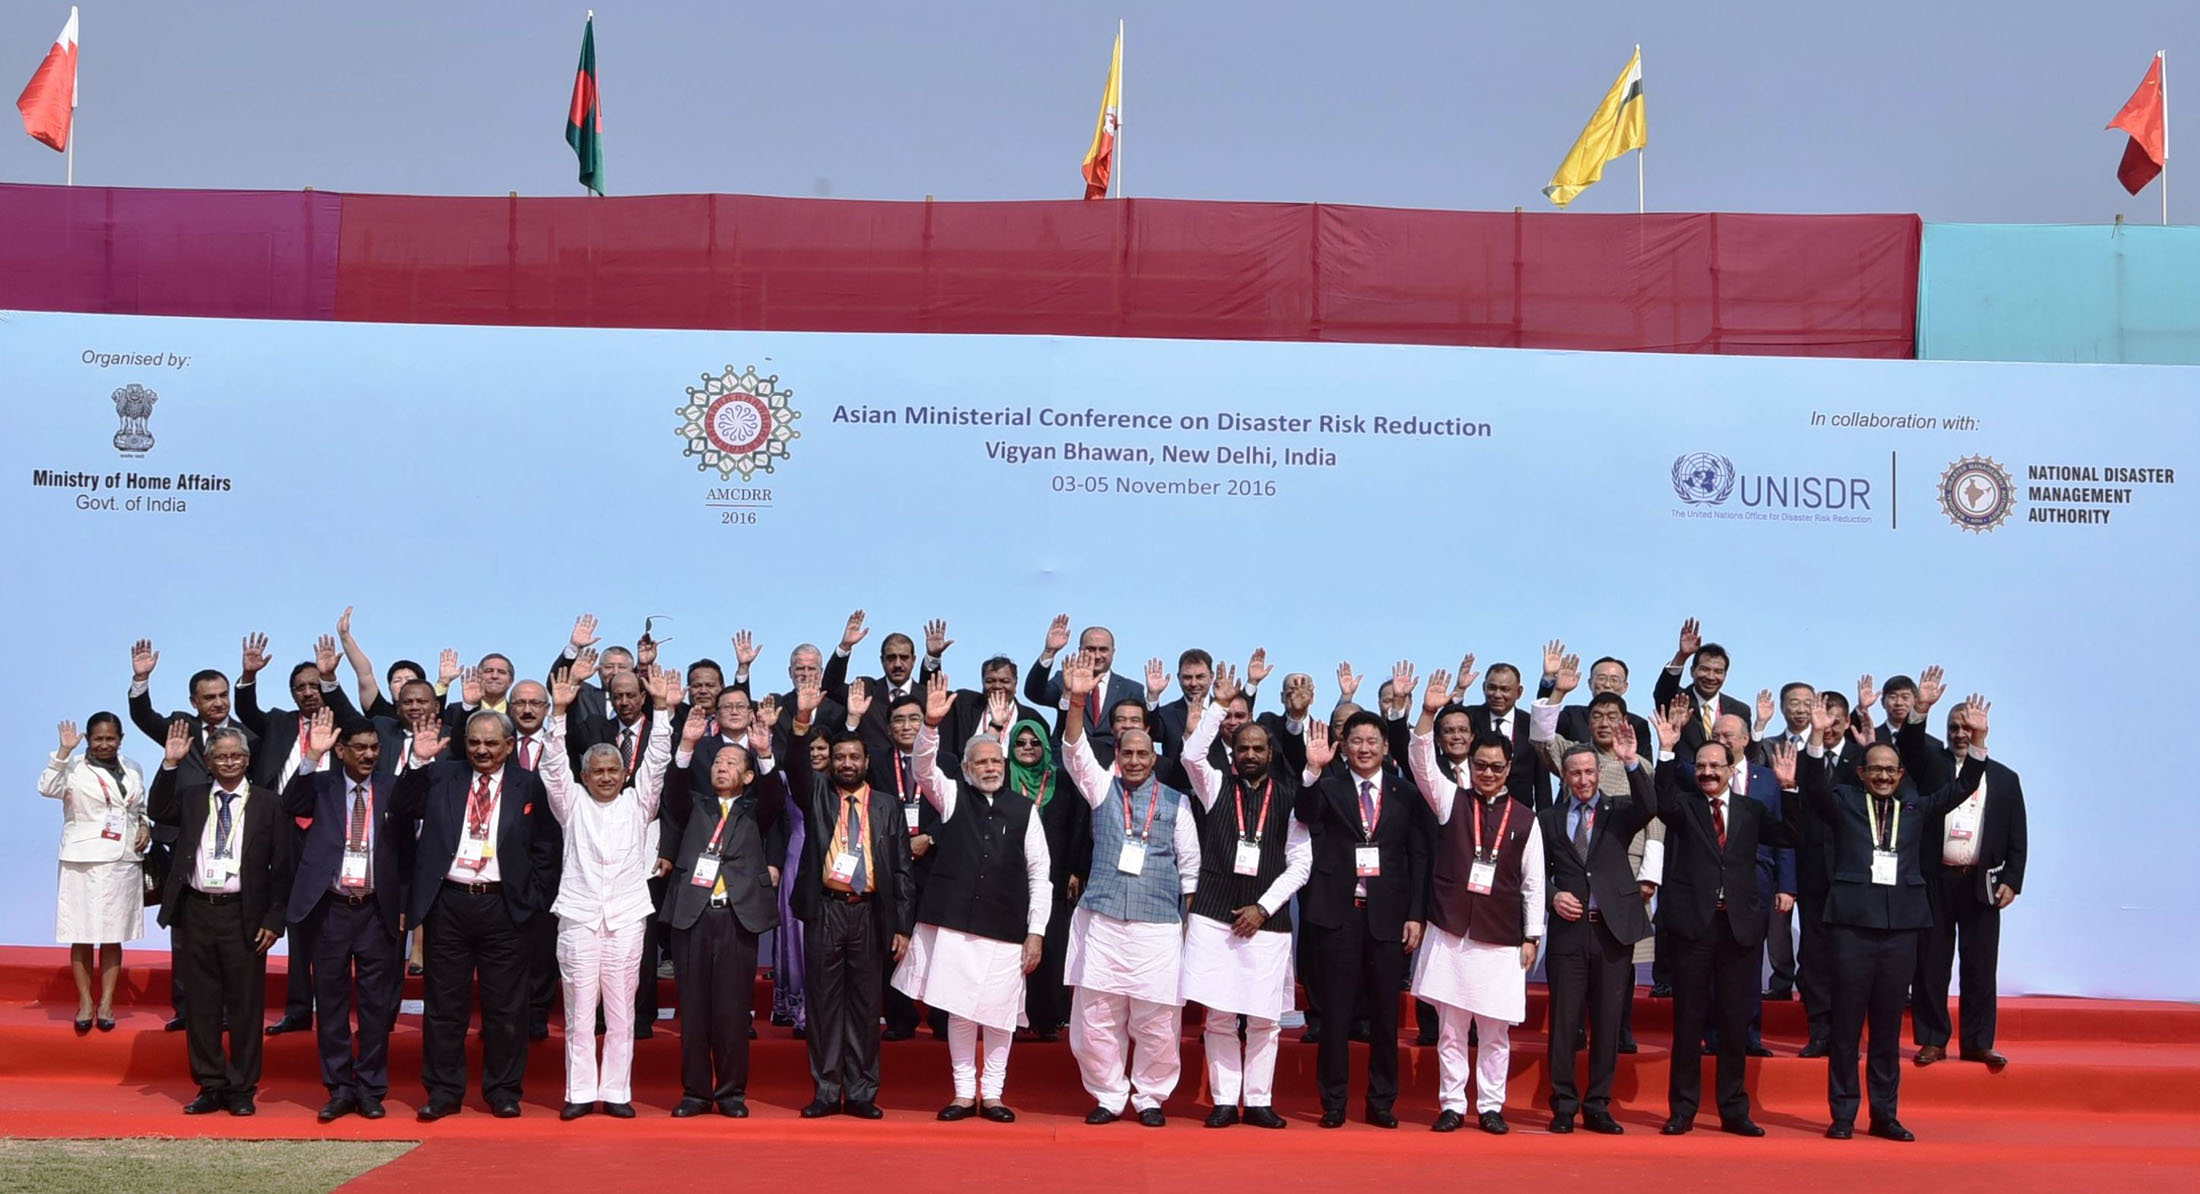 The Prime Minister, Shri Narendra Modi and Home Minister Shri Rajnath Singh with the delegates present at the Asian Ministerial Conference on Disaster Risk Reduction, in New Delhi on November 03, 2016. 	The Ministers of State for Home Affairs, Shri Hansraj Gangaram Ahir and Shri Kiren Rijiju are also seen.